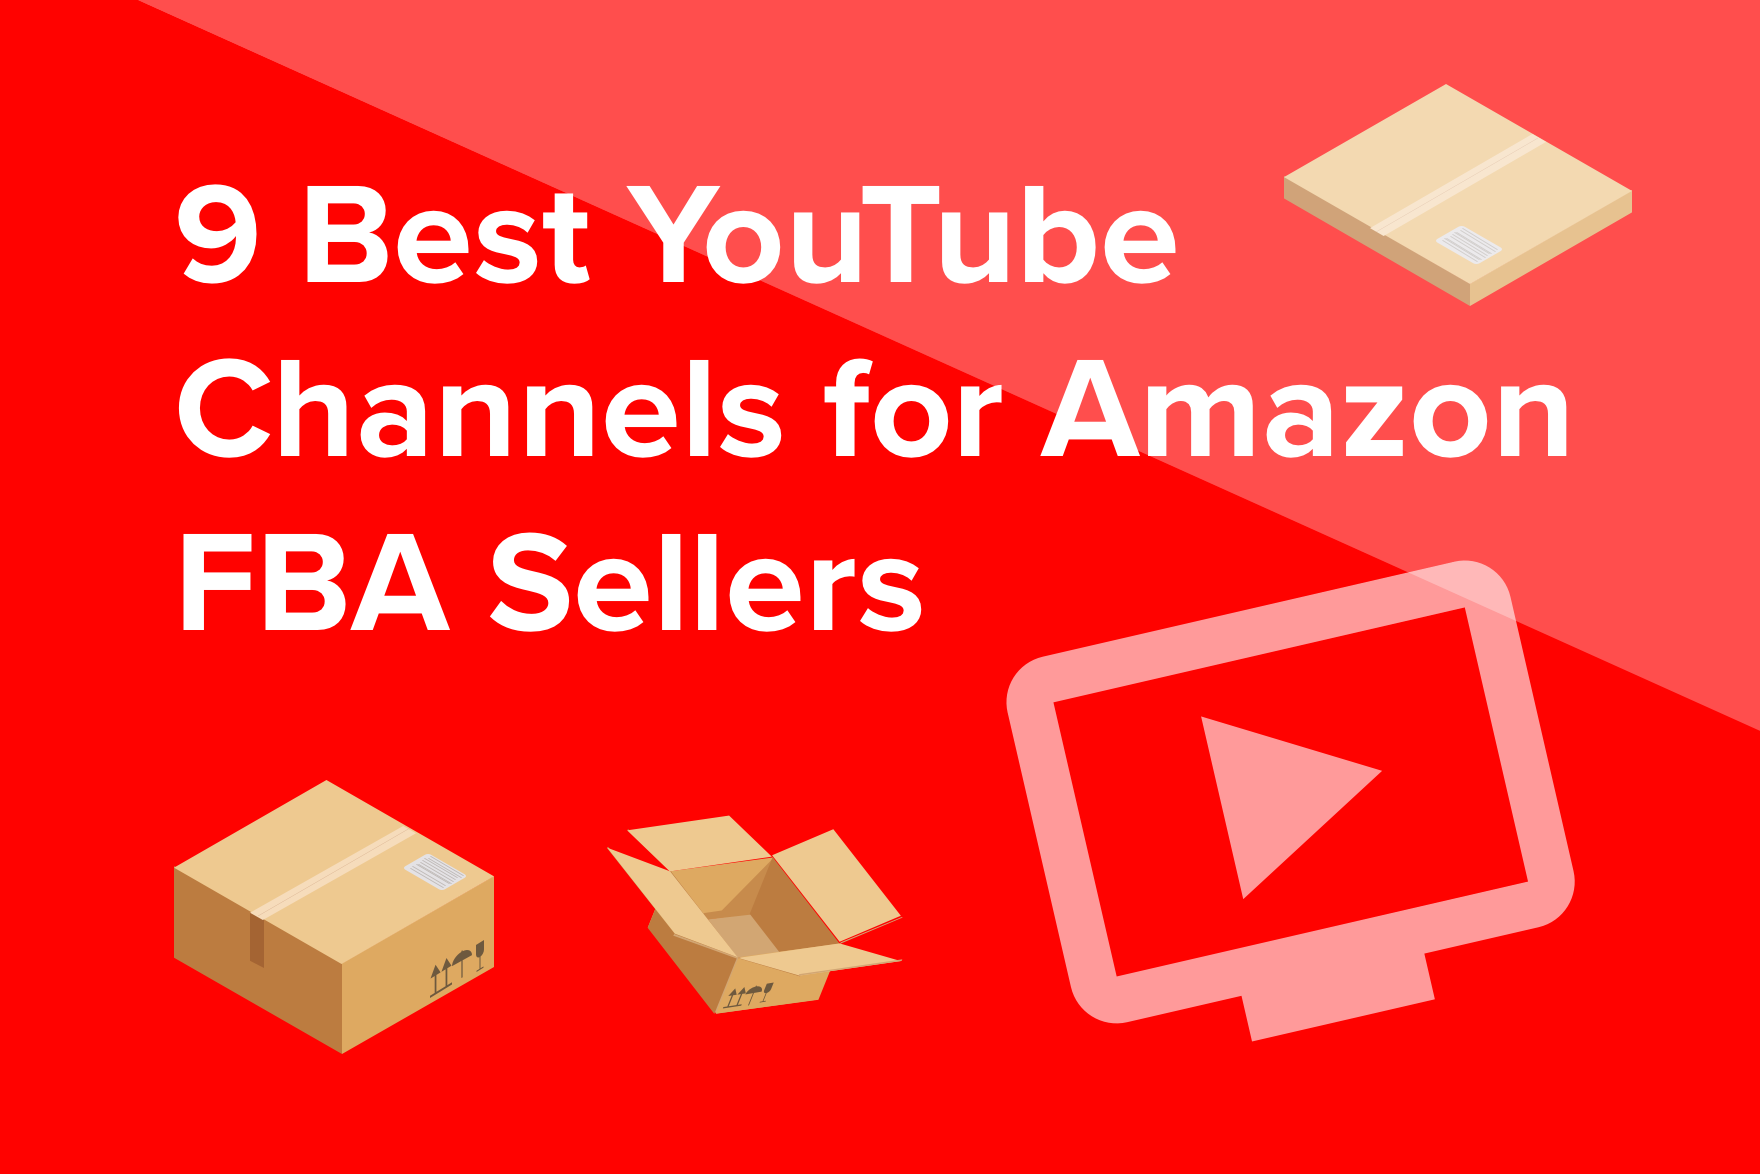 9 Best YouTube Channels for Amazon FBA Sellers